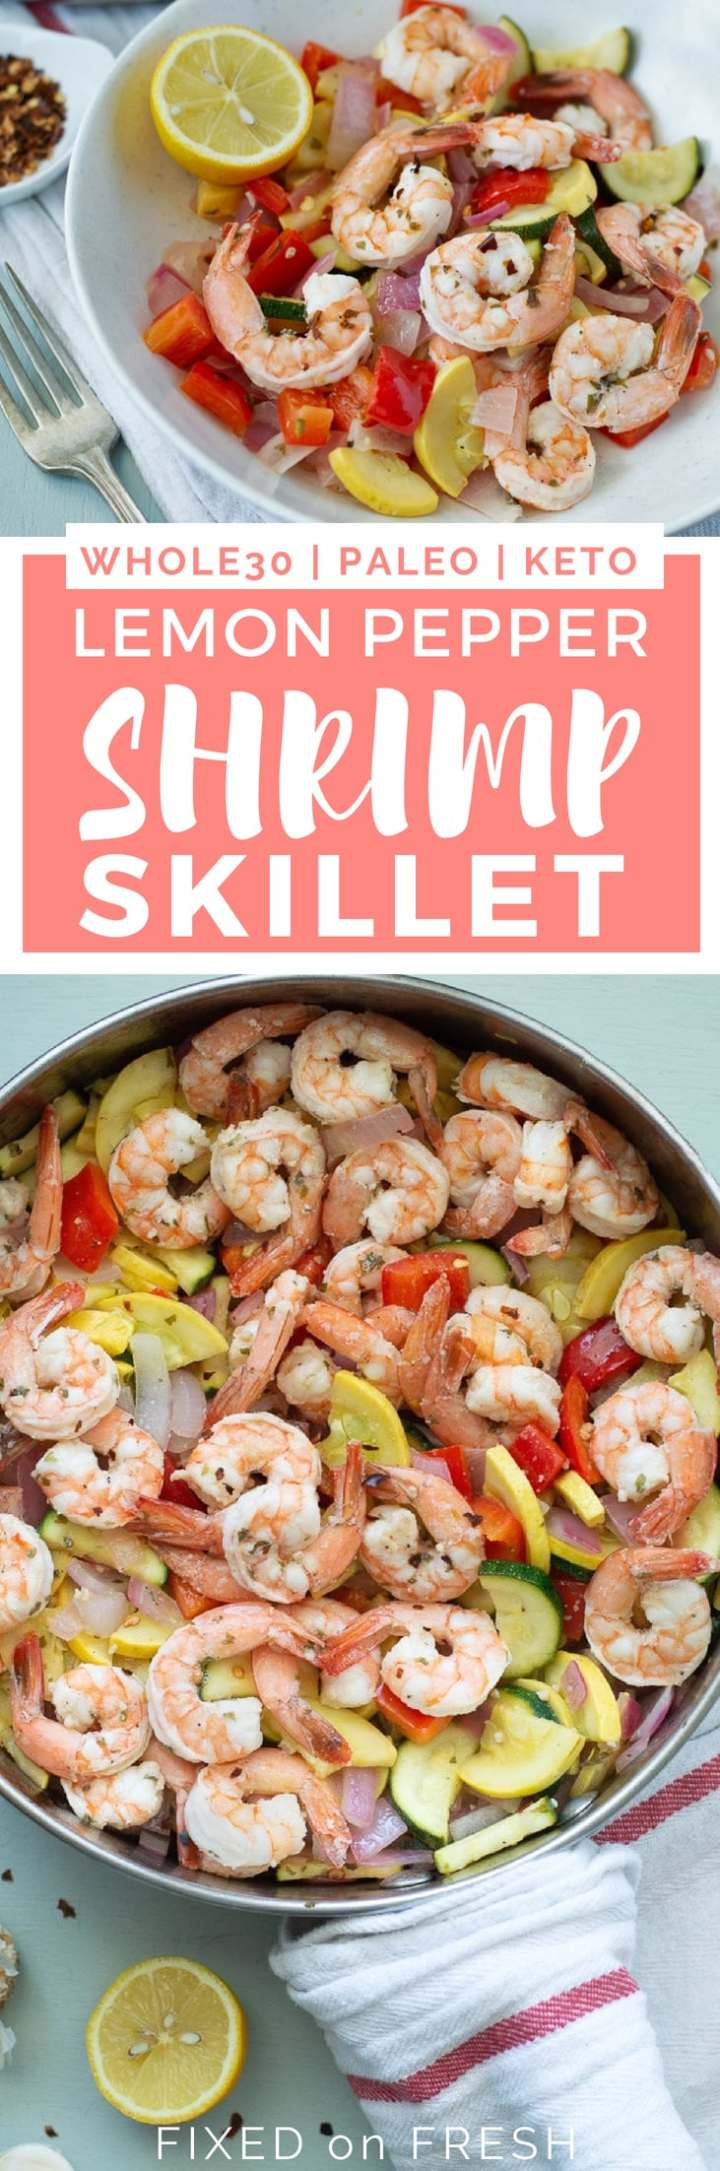 Lemon Pepper Shrimp Skillet is a one pan dinner that takes less than 20 minutes to make for busy weeknight dinners. This healthy shrimp recipe is Whole30, Paleo and Low Carb or Keto #lowcarb #easydinner